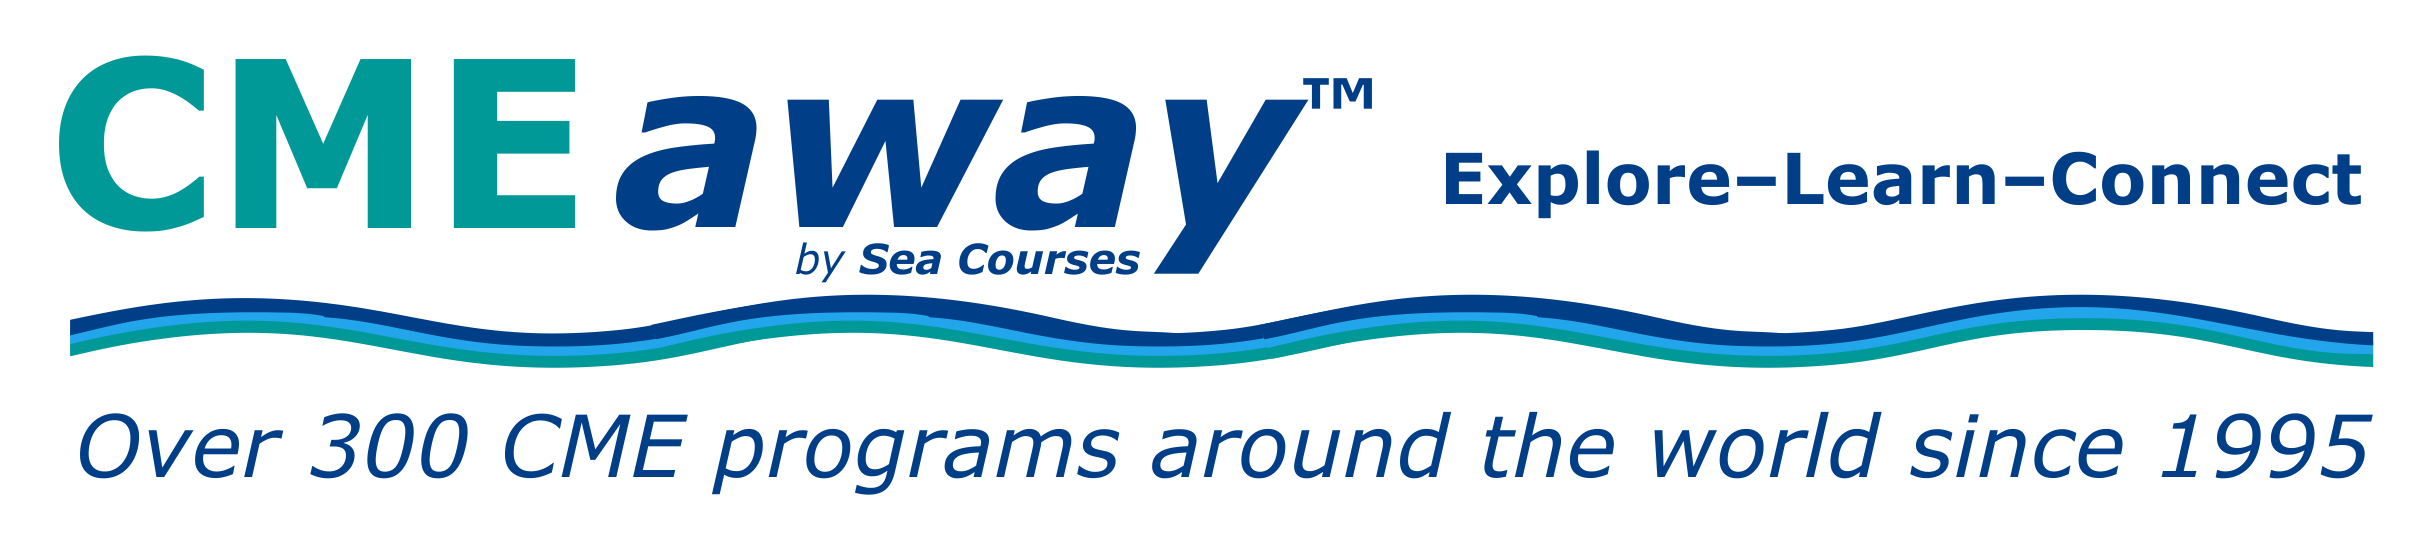 CME AWAY™ by Sea Courses